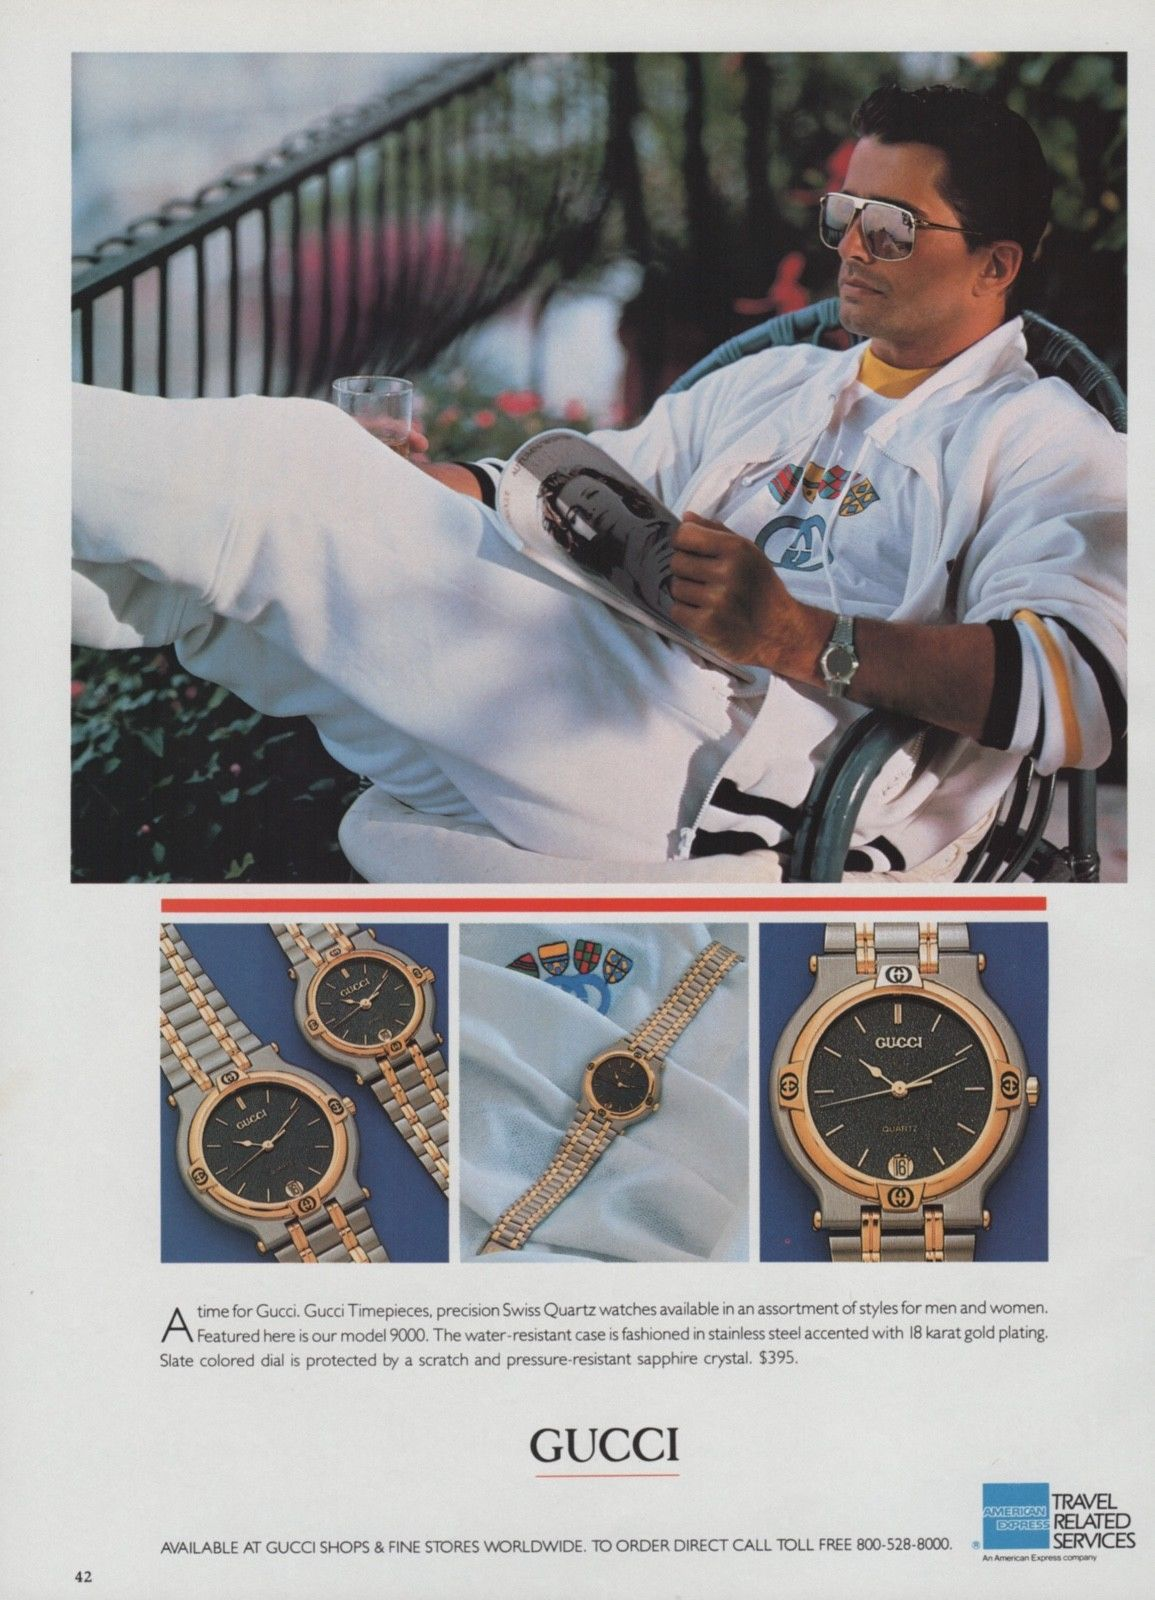 1986 Gucci Model 9000 Swiss quartz watch print ad - Vintage Gucci advertising campaigns archive